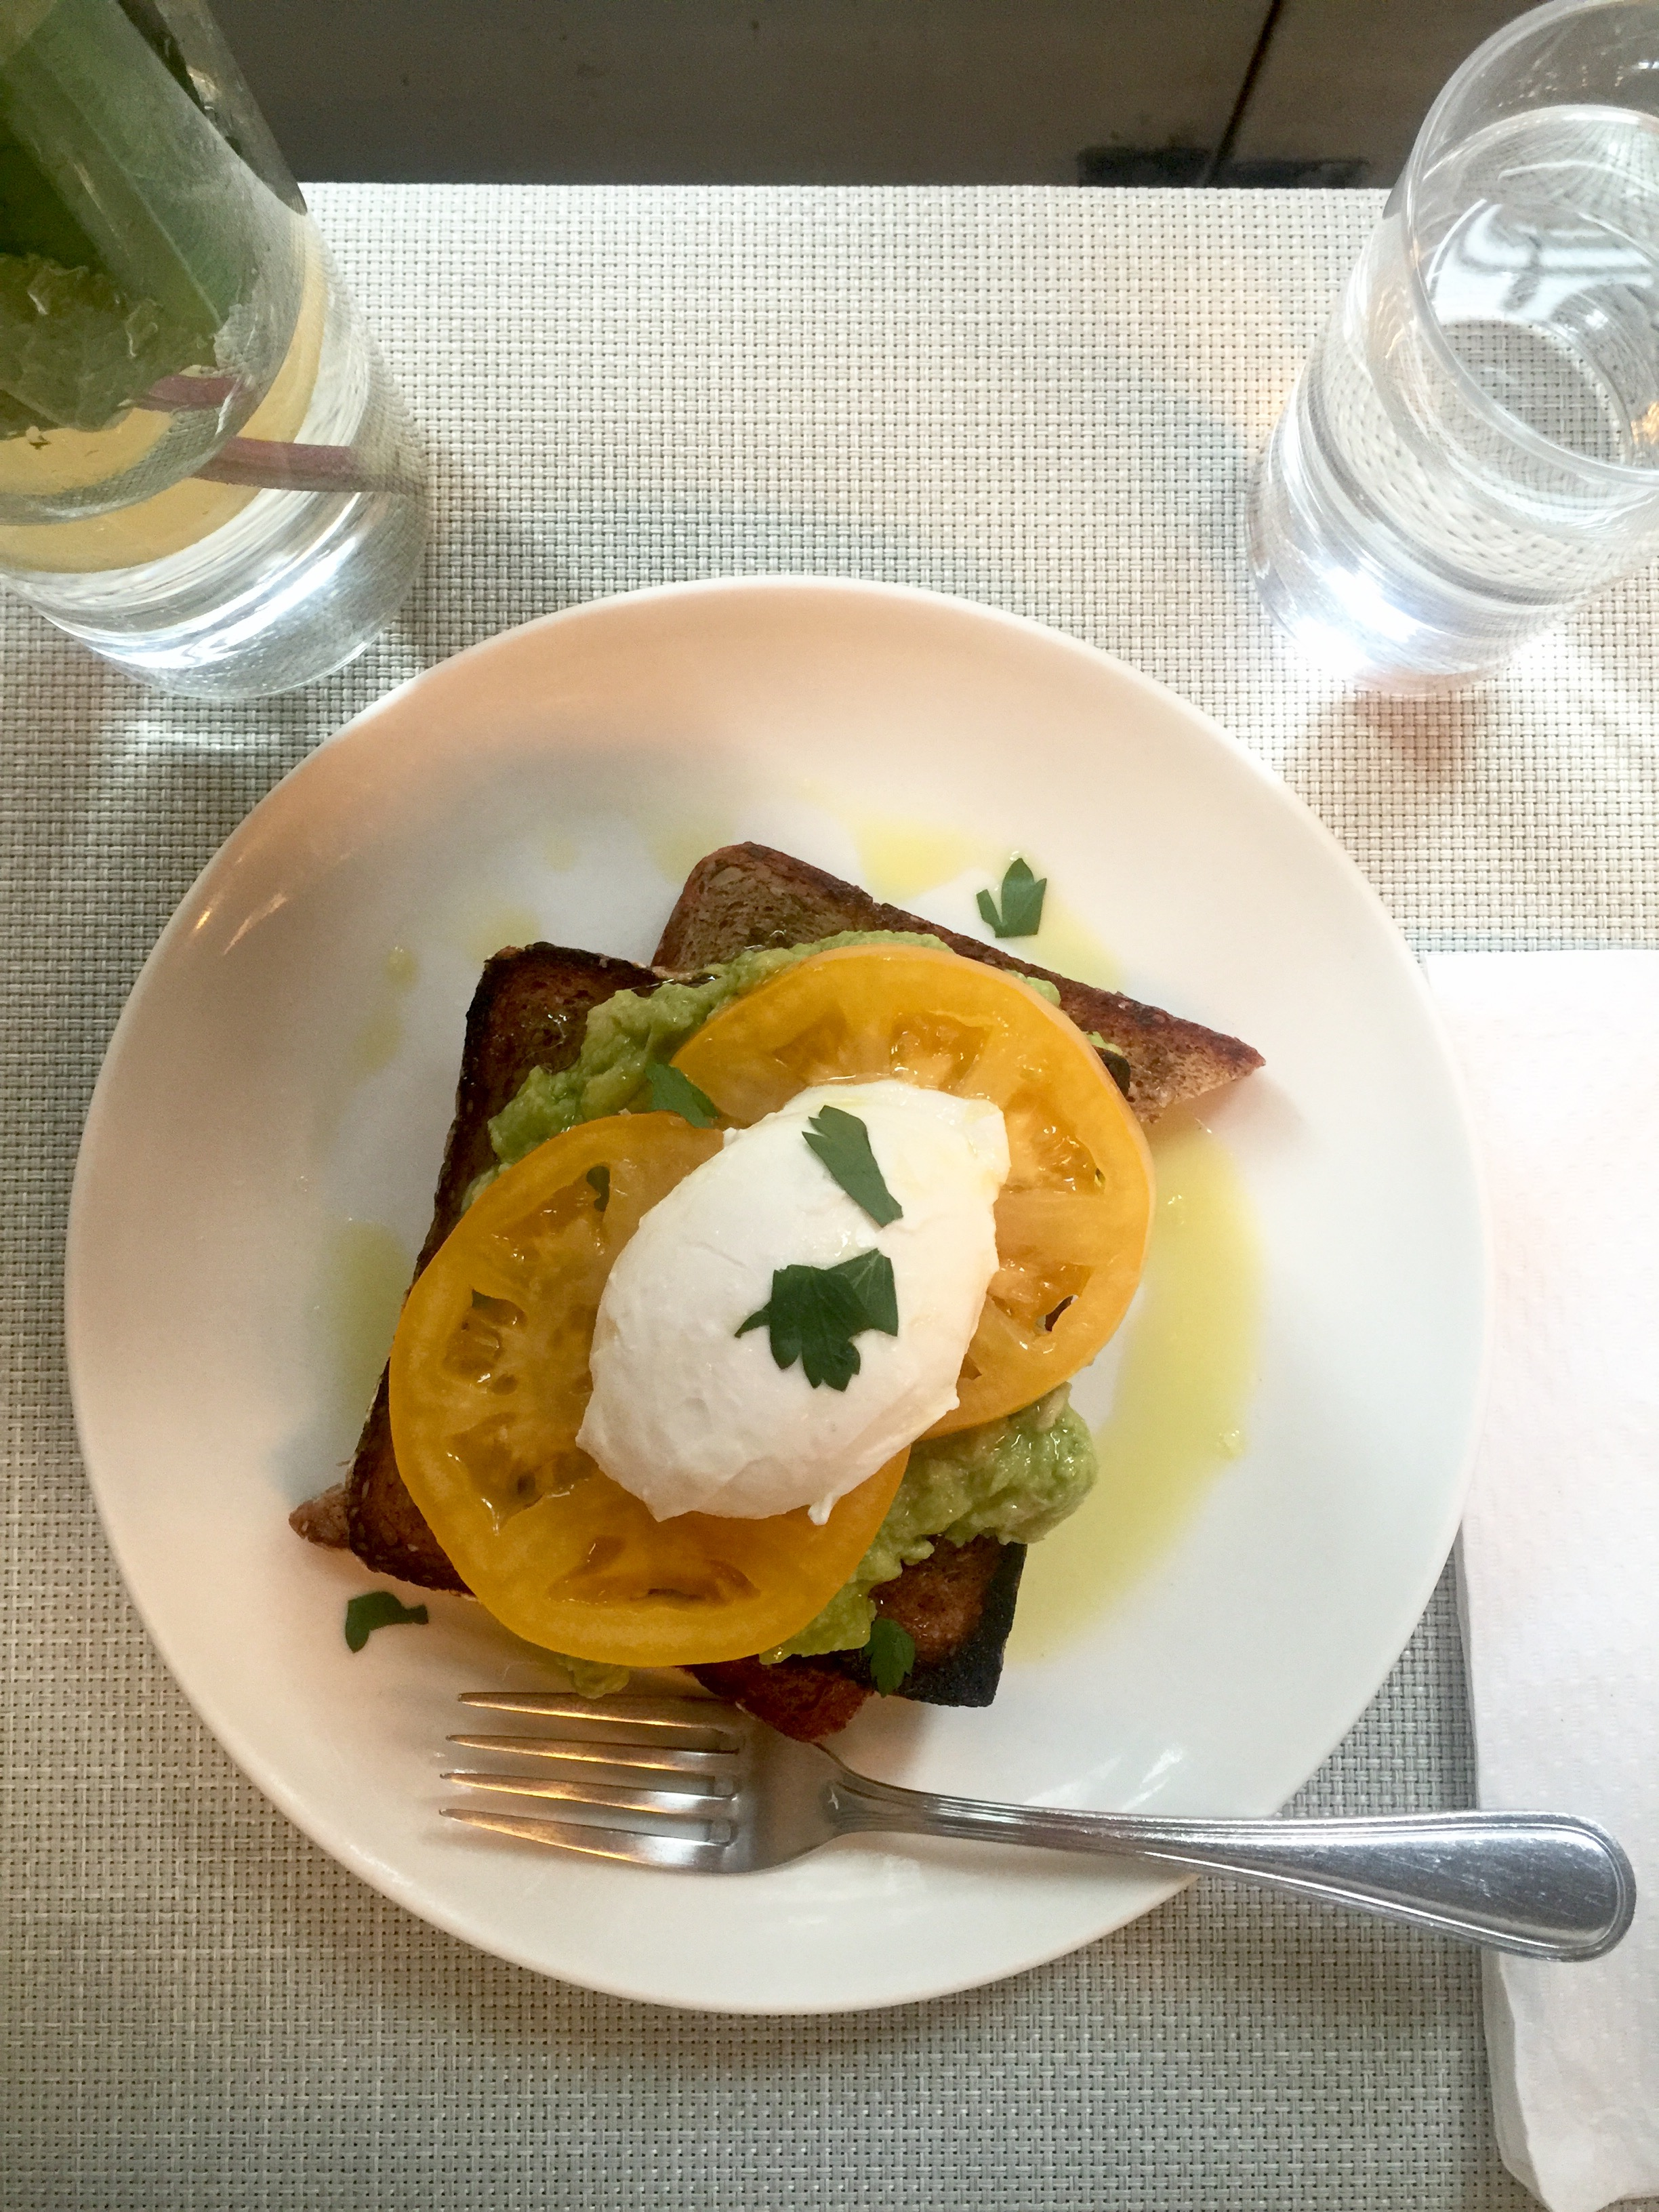 Finally trying  Egg Shop , they serve-up an epic avocado & poached egg dish